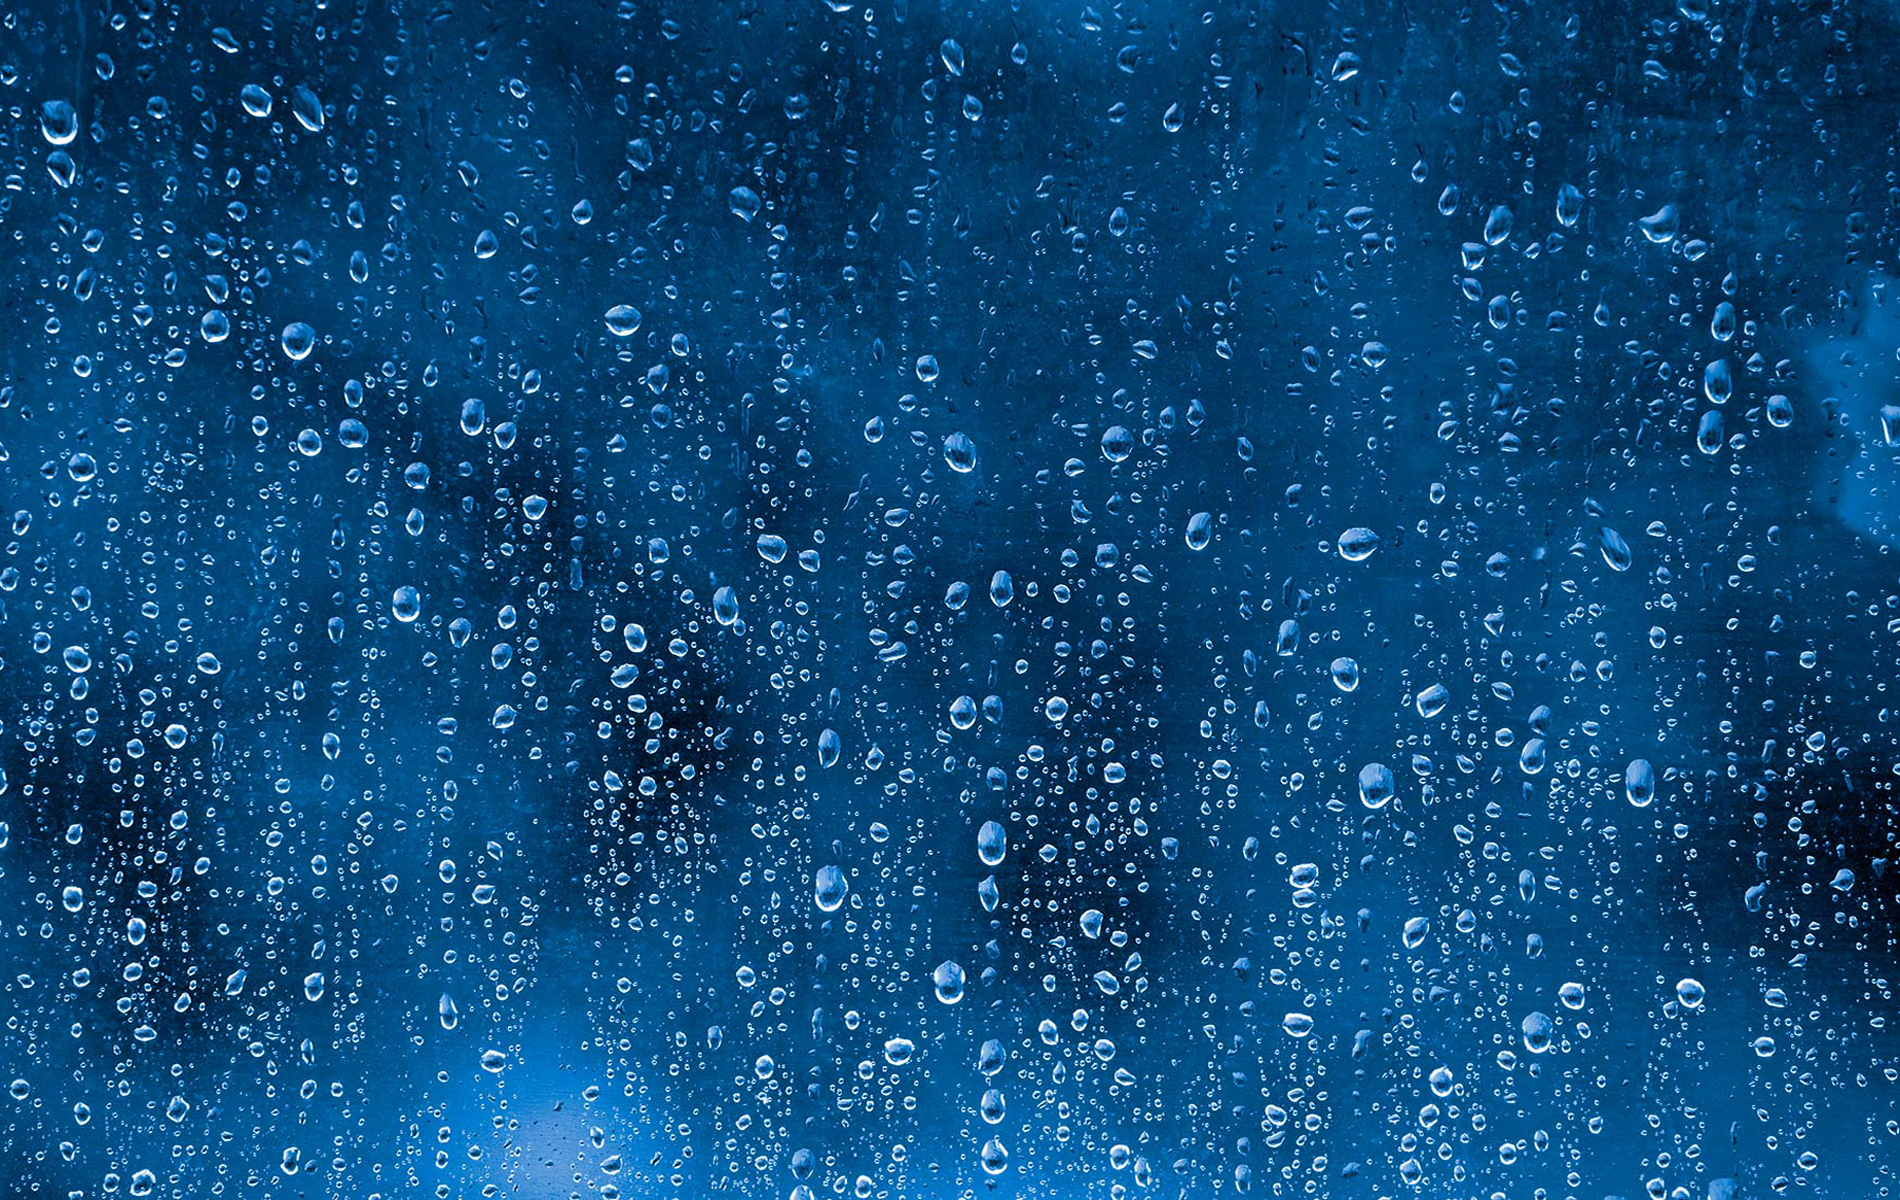 Raindrops Wallpaper And Background Image